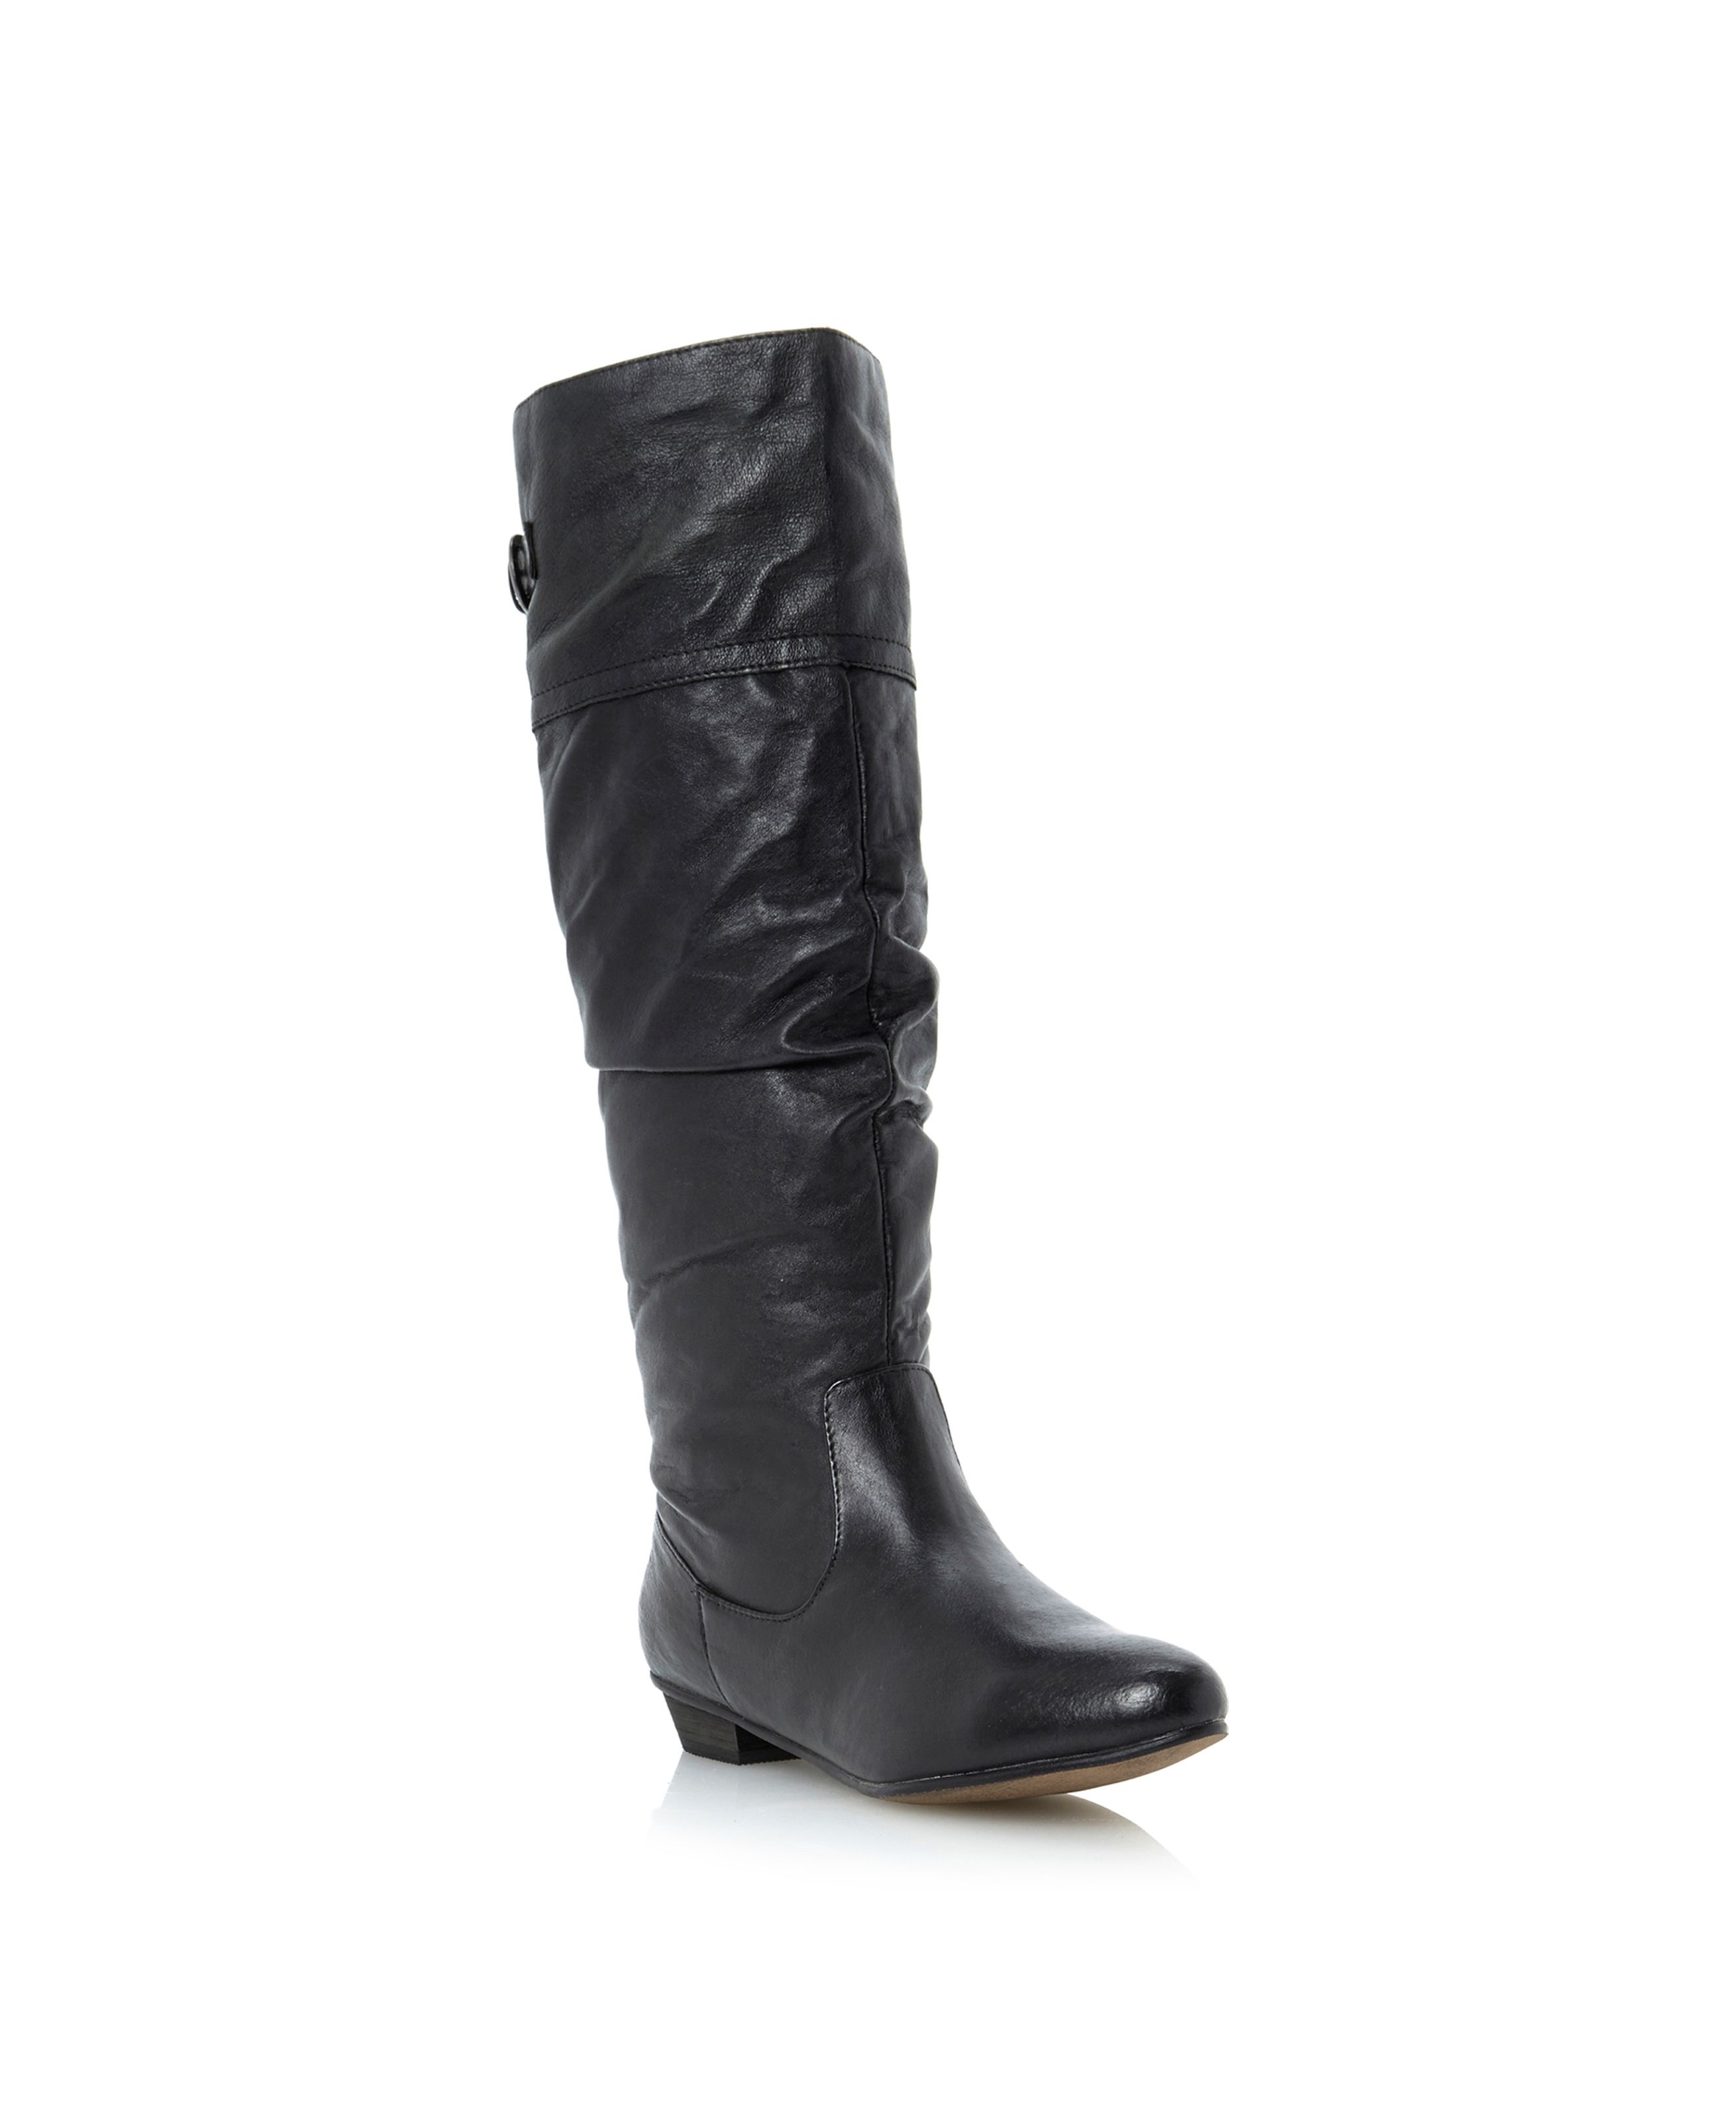 Steve Madden Craave Sm slouch high boots Black